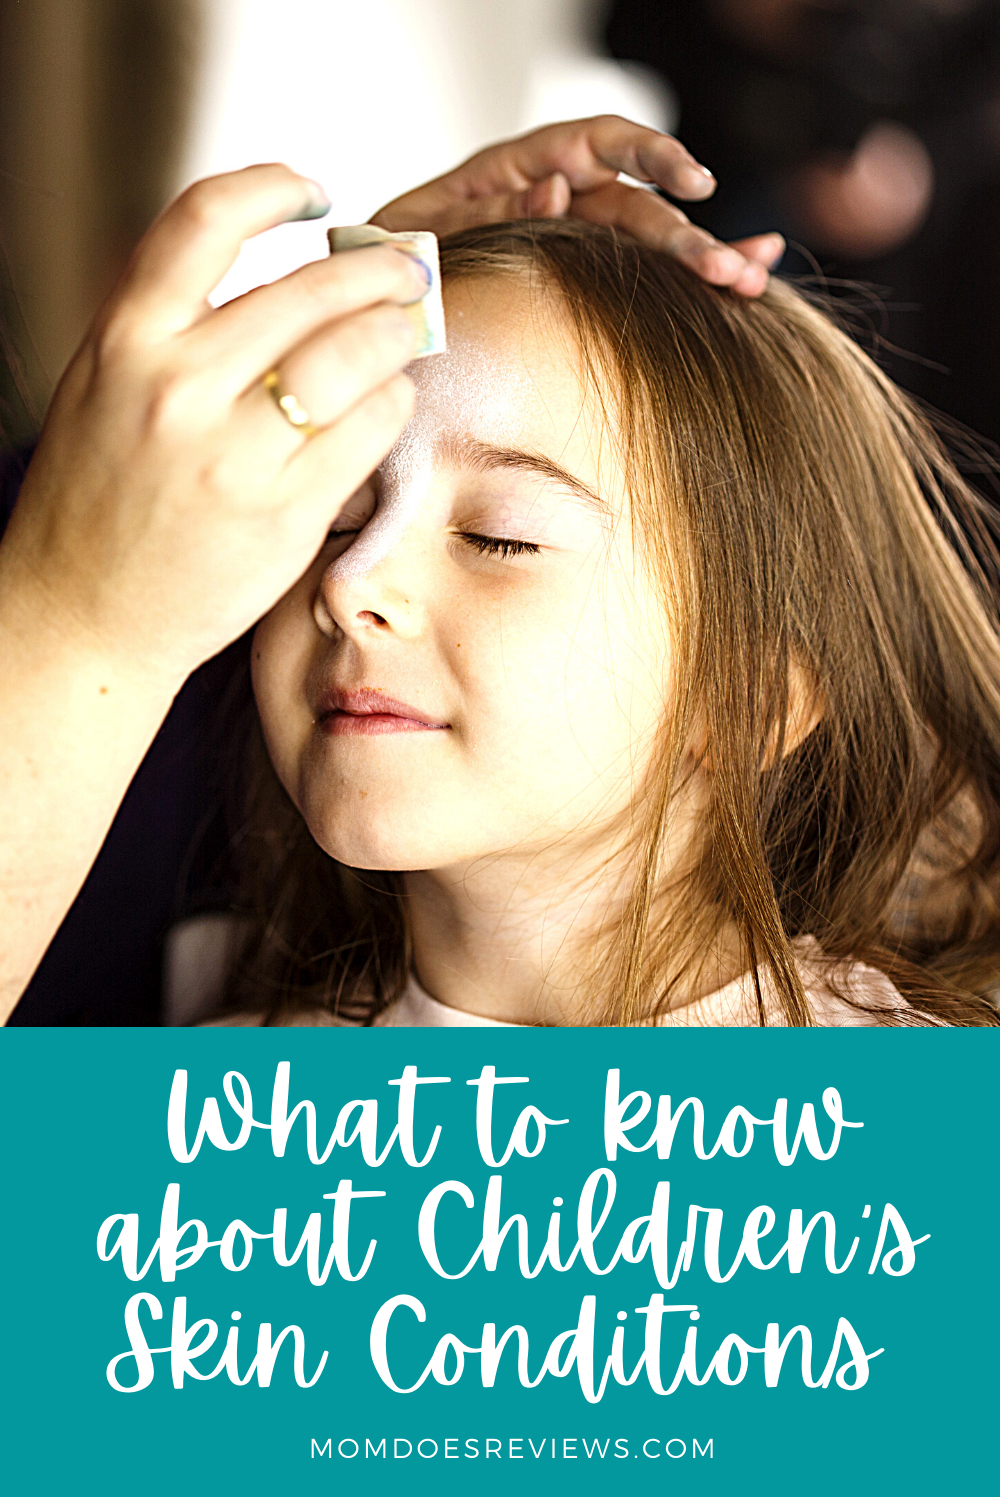 4 Reasons Why Your Children May Be Experiencing Chronic Skin Conditions